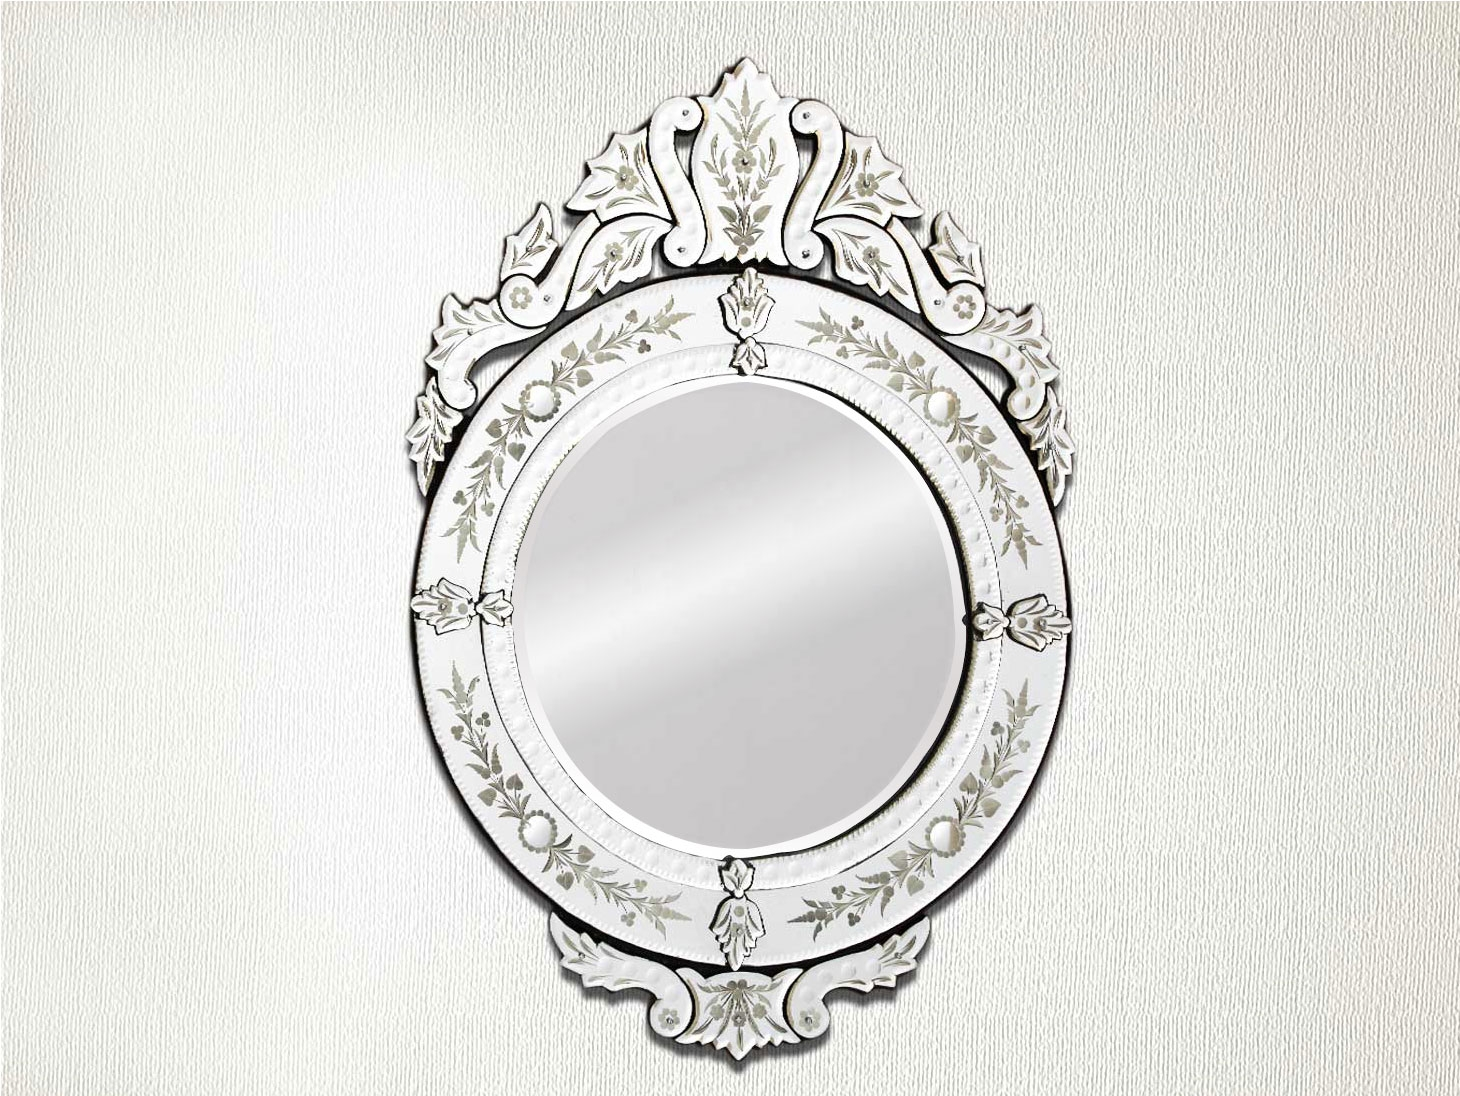 Venetian Mirror 3625 Inches X 255 Inches Throughout Round Venetian Mirror (View 8 of 15)